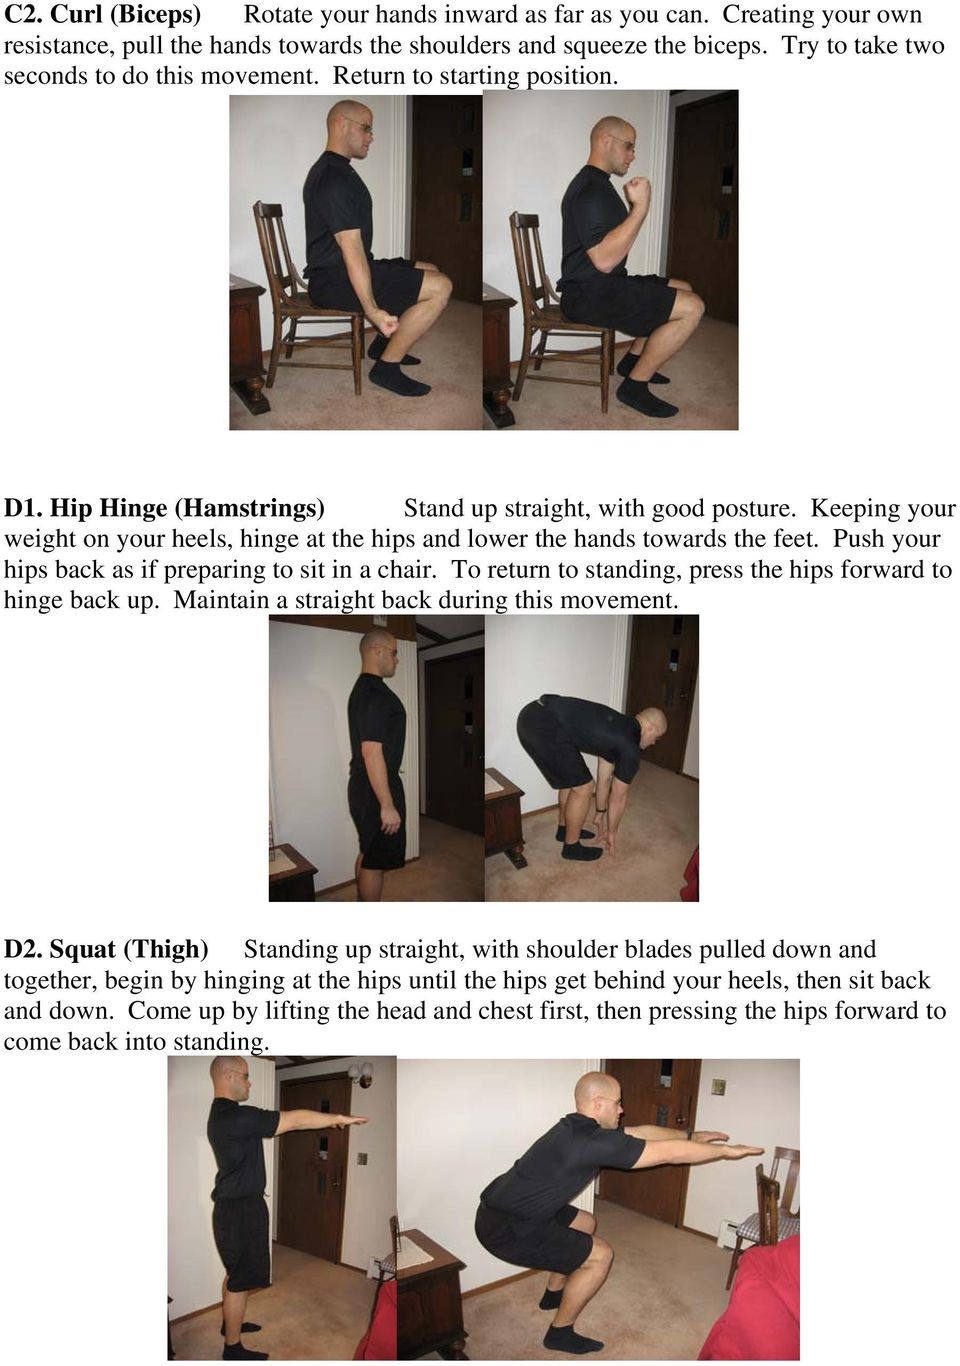 Push your hips back as if preparing to sit in a chair. To return to standing, press the hips forward to hinge back up. Maintain a straight back during this movement. D2.